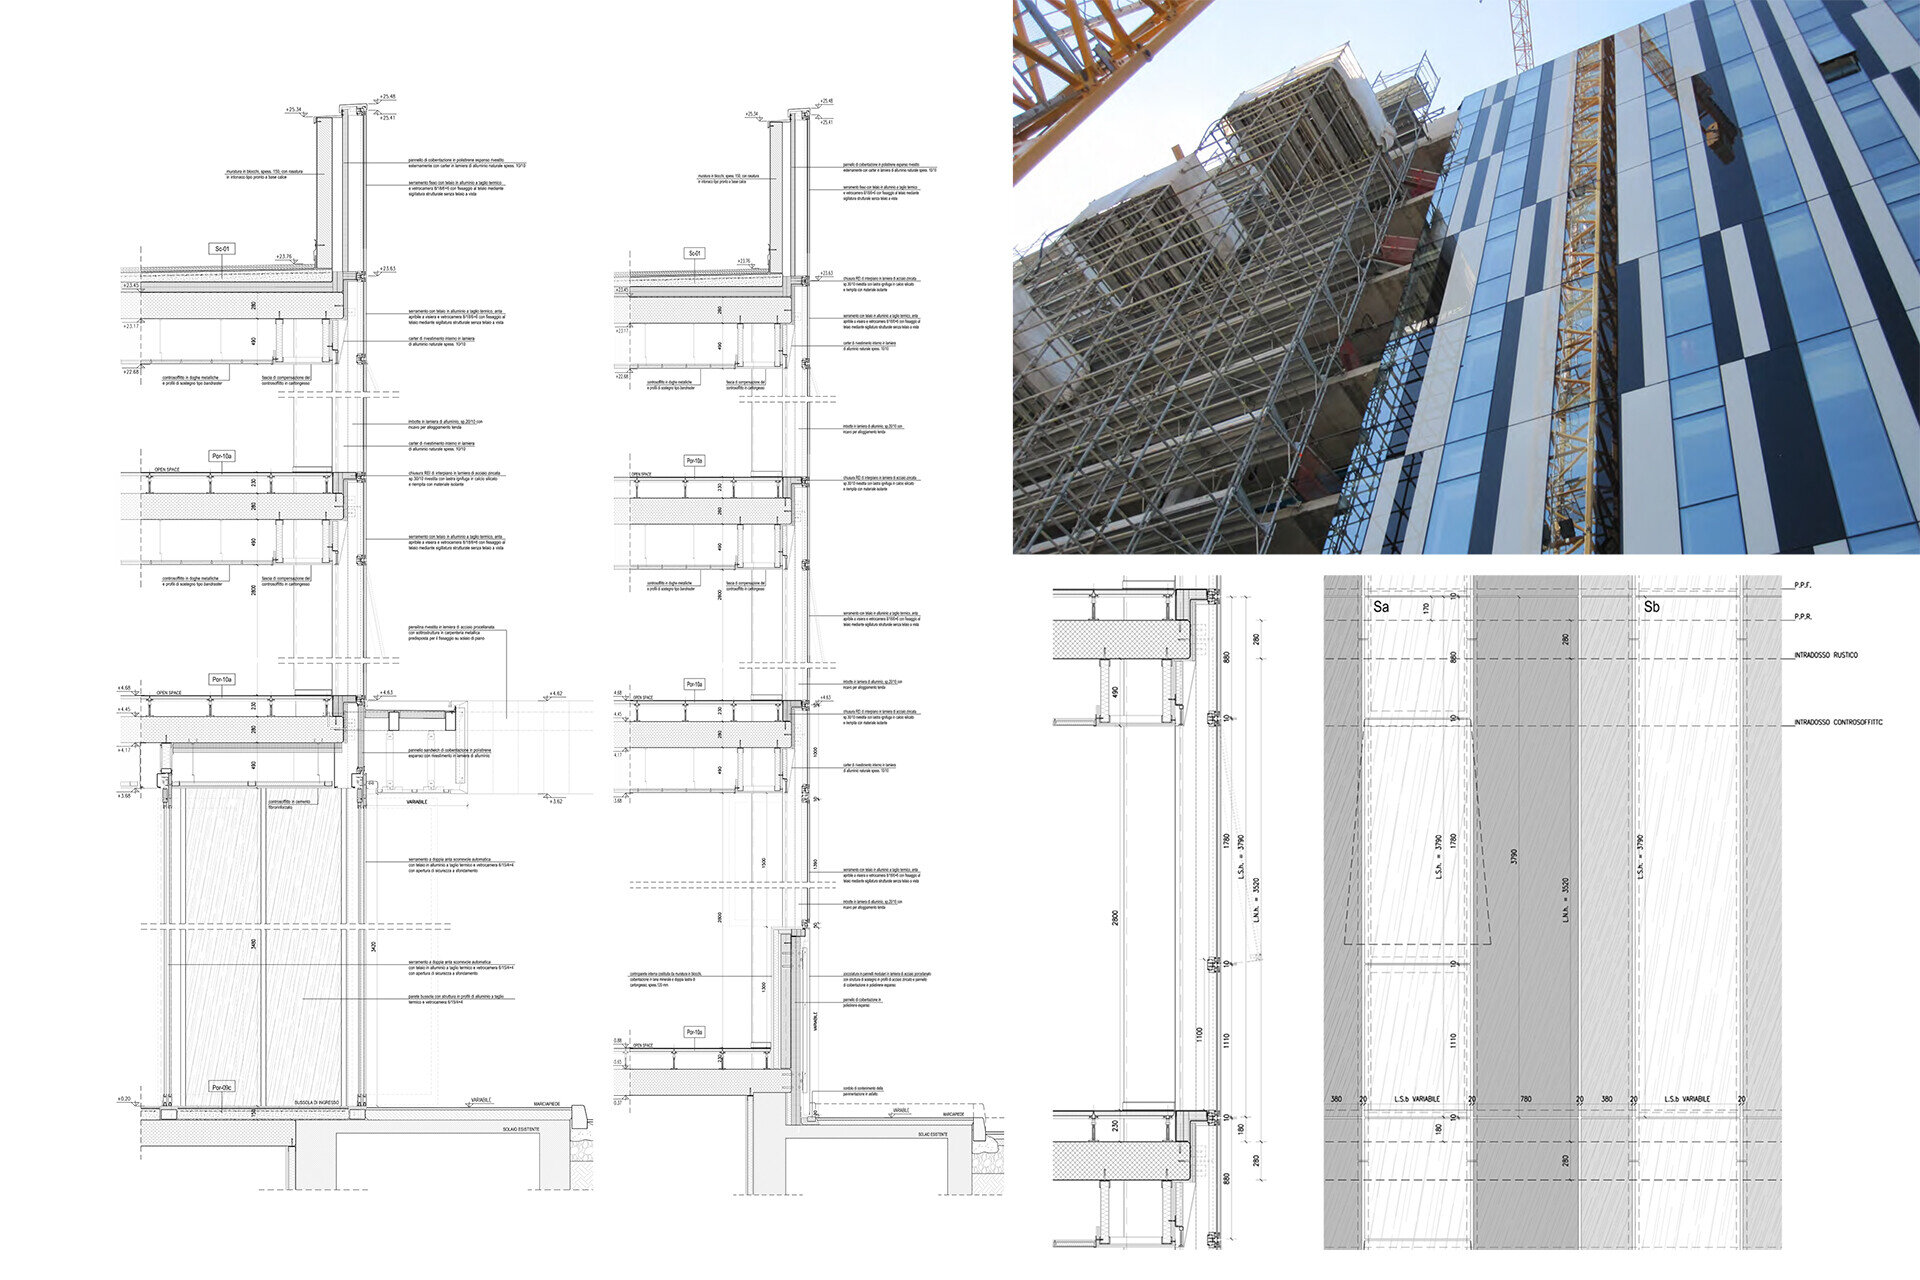 Facade design engineering by SCE Project RCS Dettagli